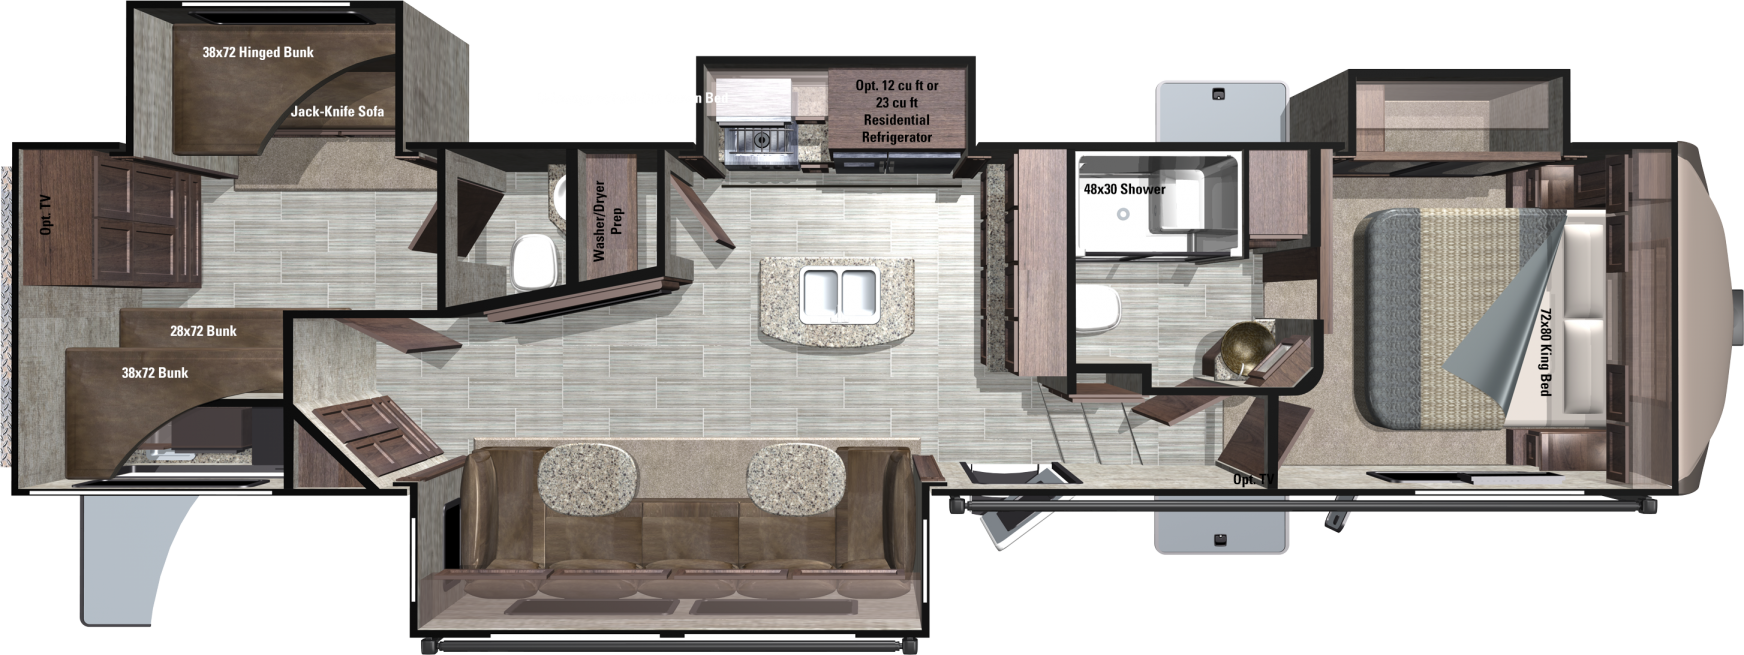 MF374BHS Floorplan